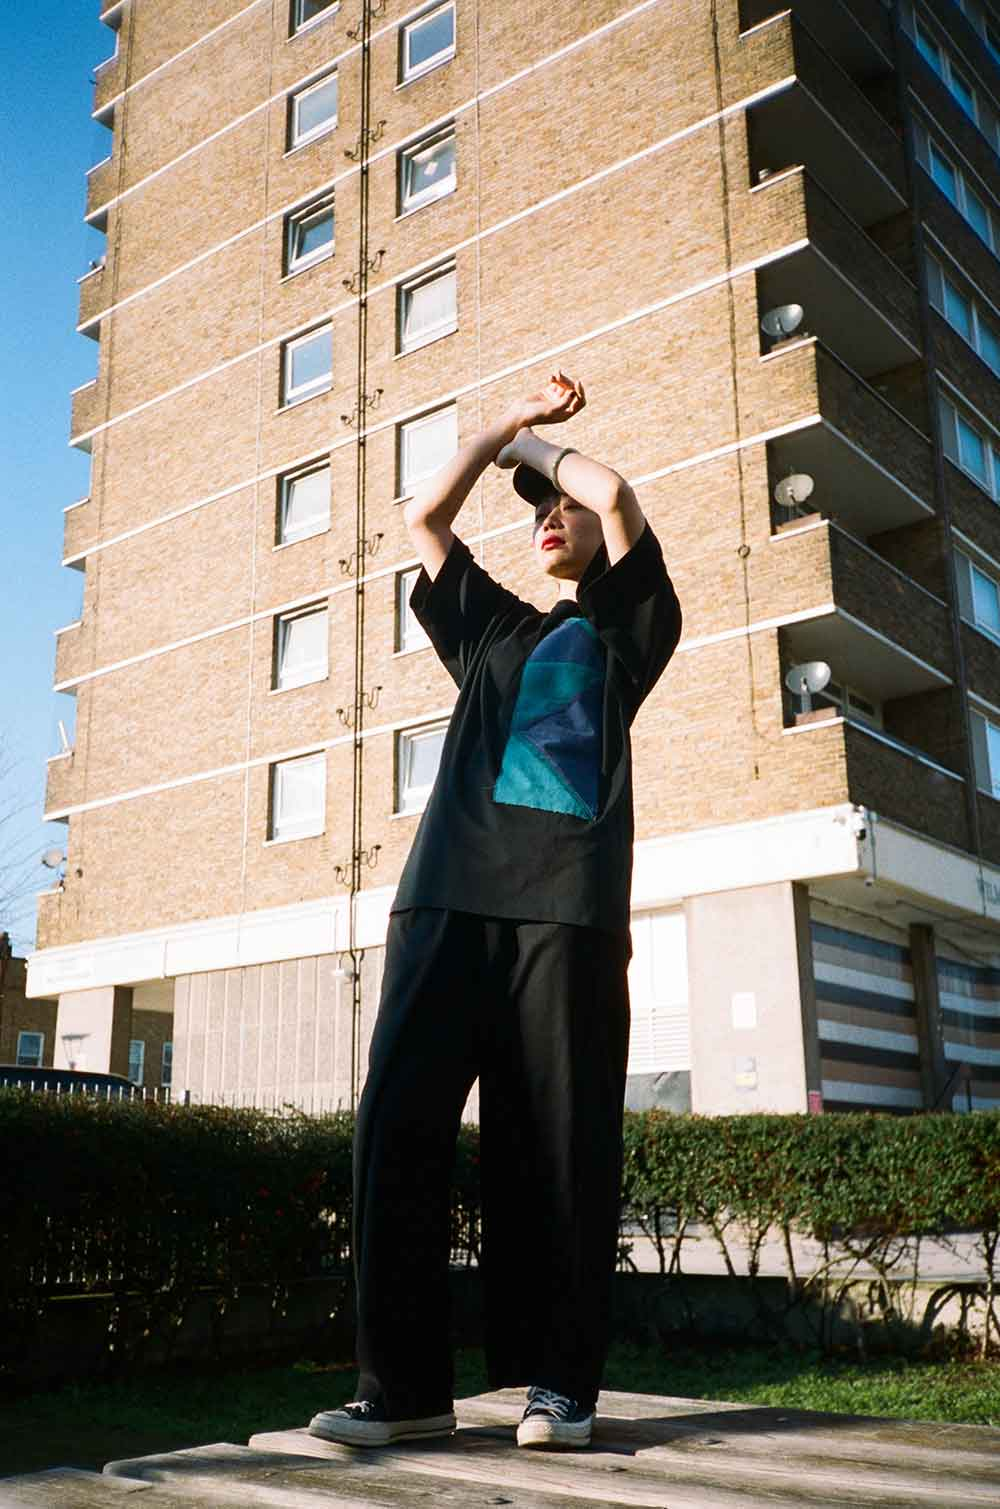 Housing estate tower Atika fashion shoot Roman Road